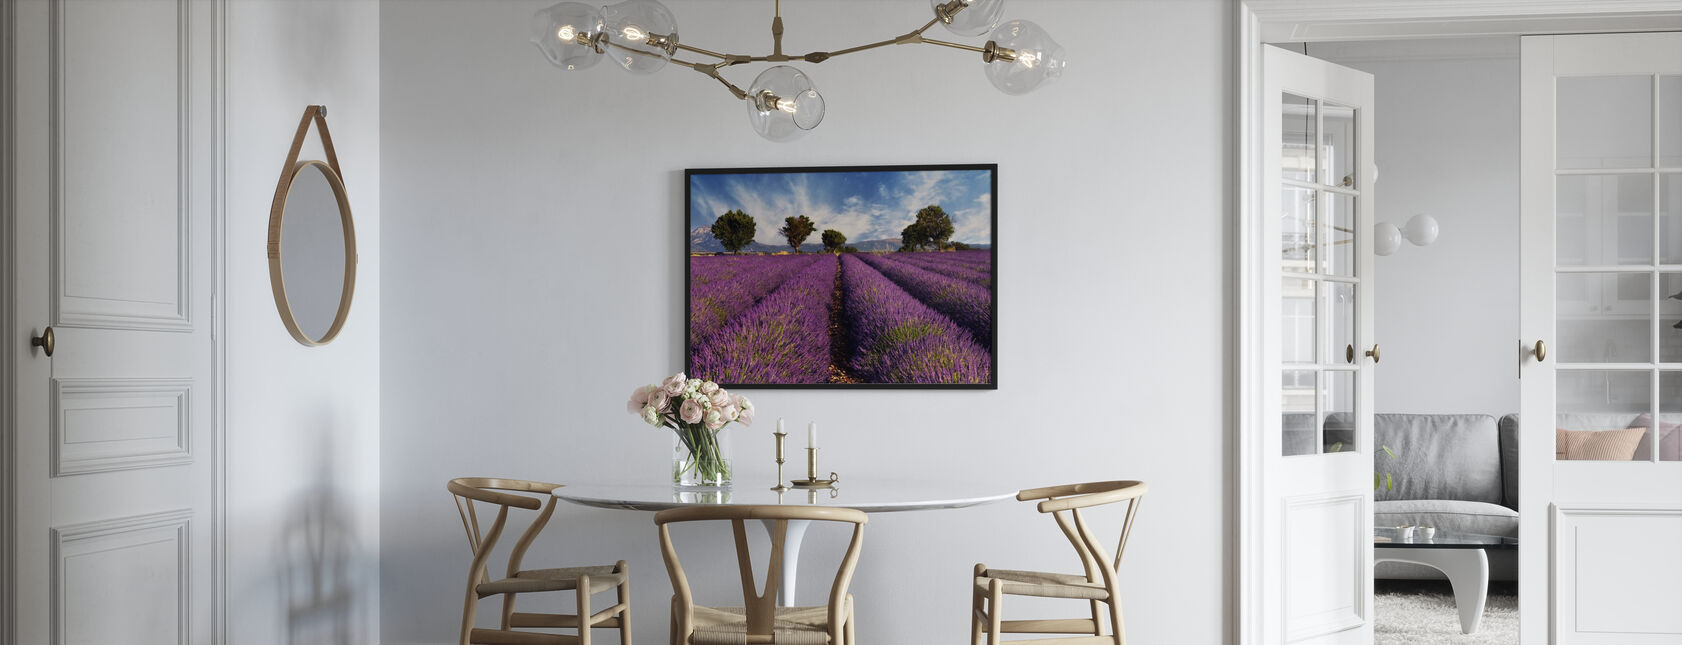 Lavender Field in Provence - Poster - Kitchen